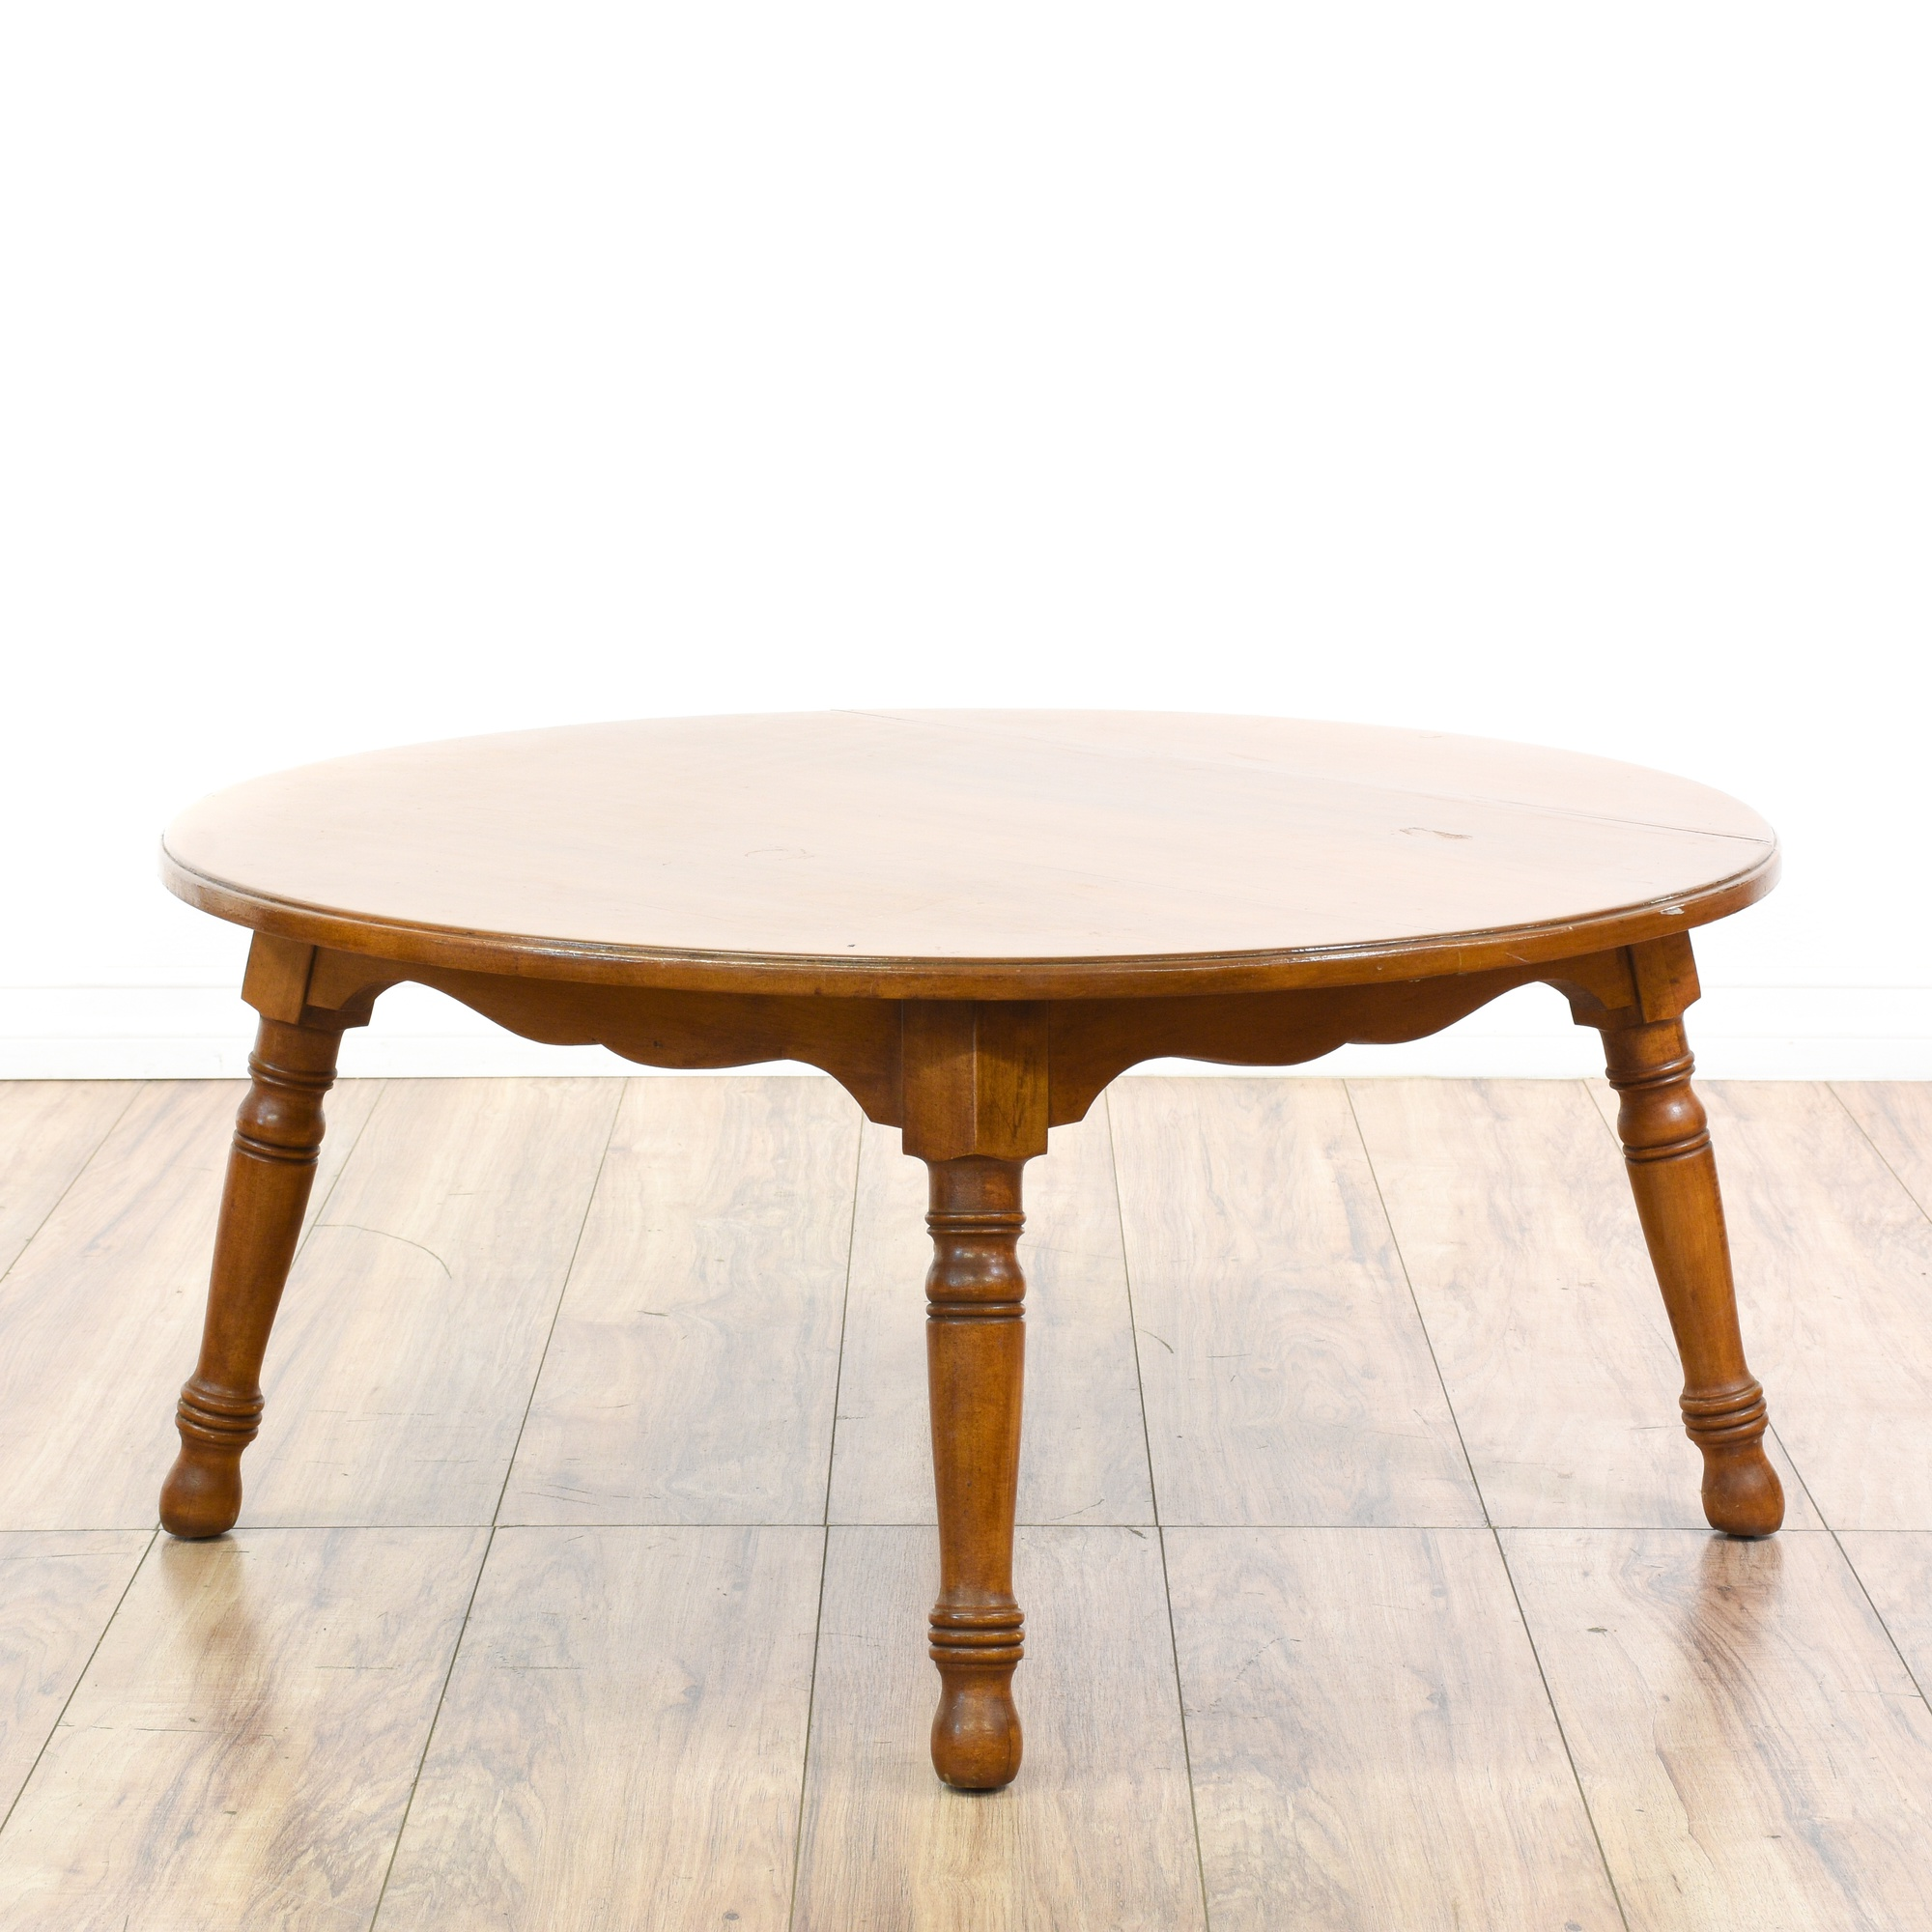 "Pennsylvania House"" Round Maple Coffee Table"